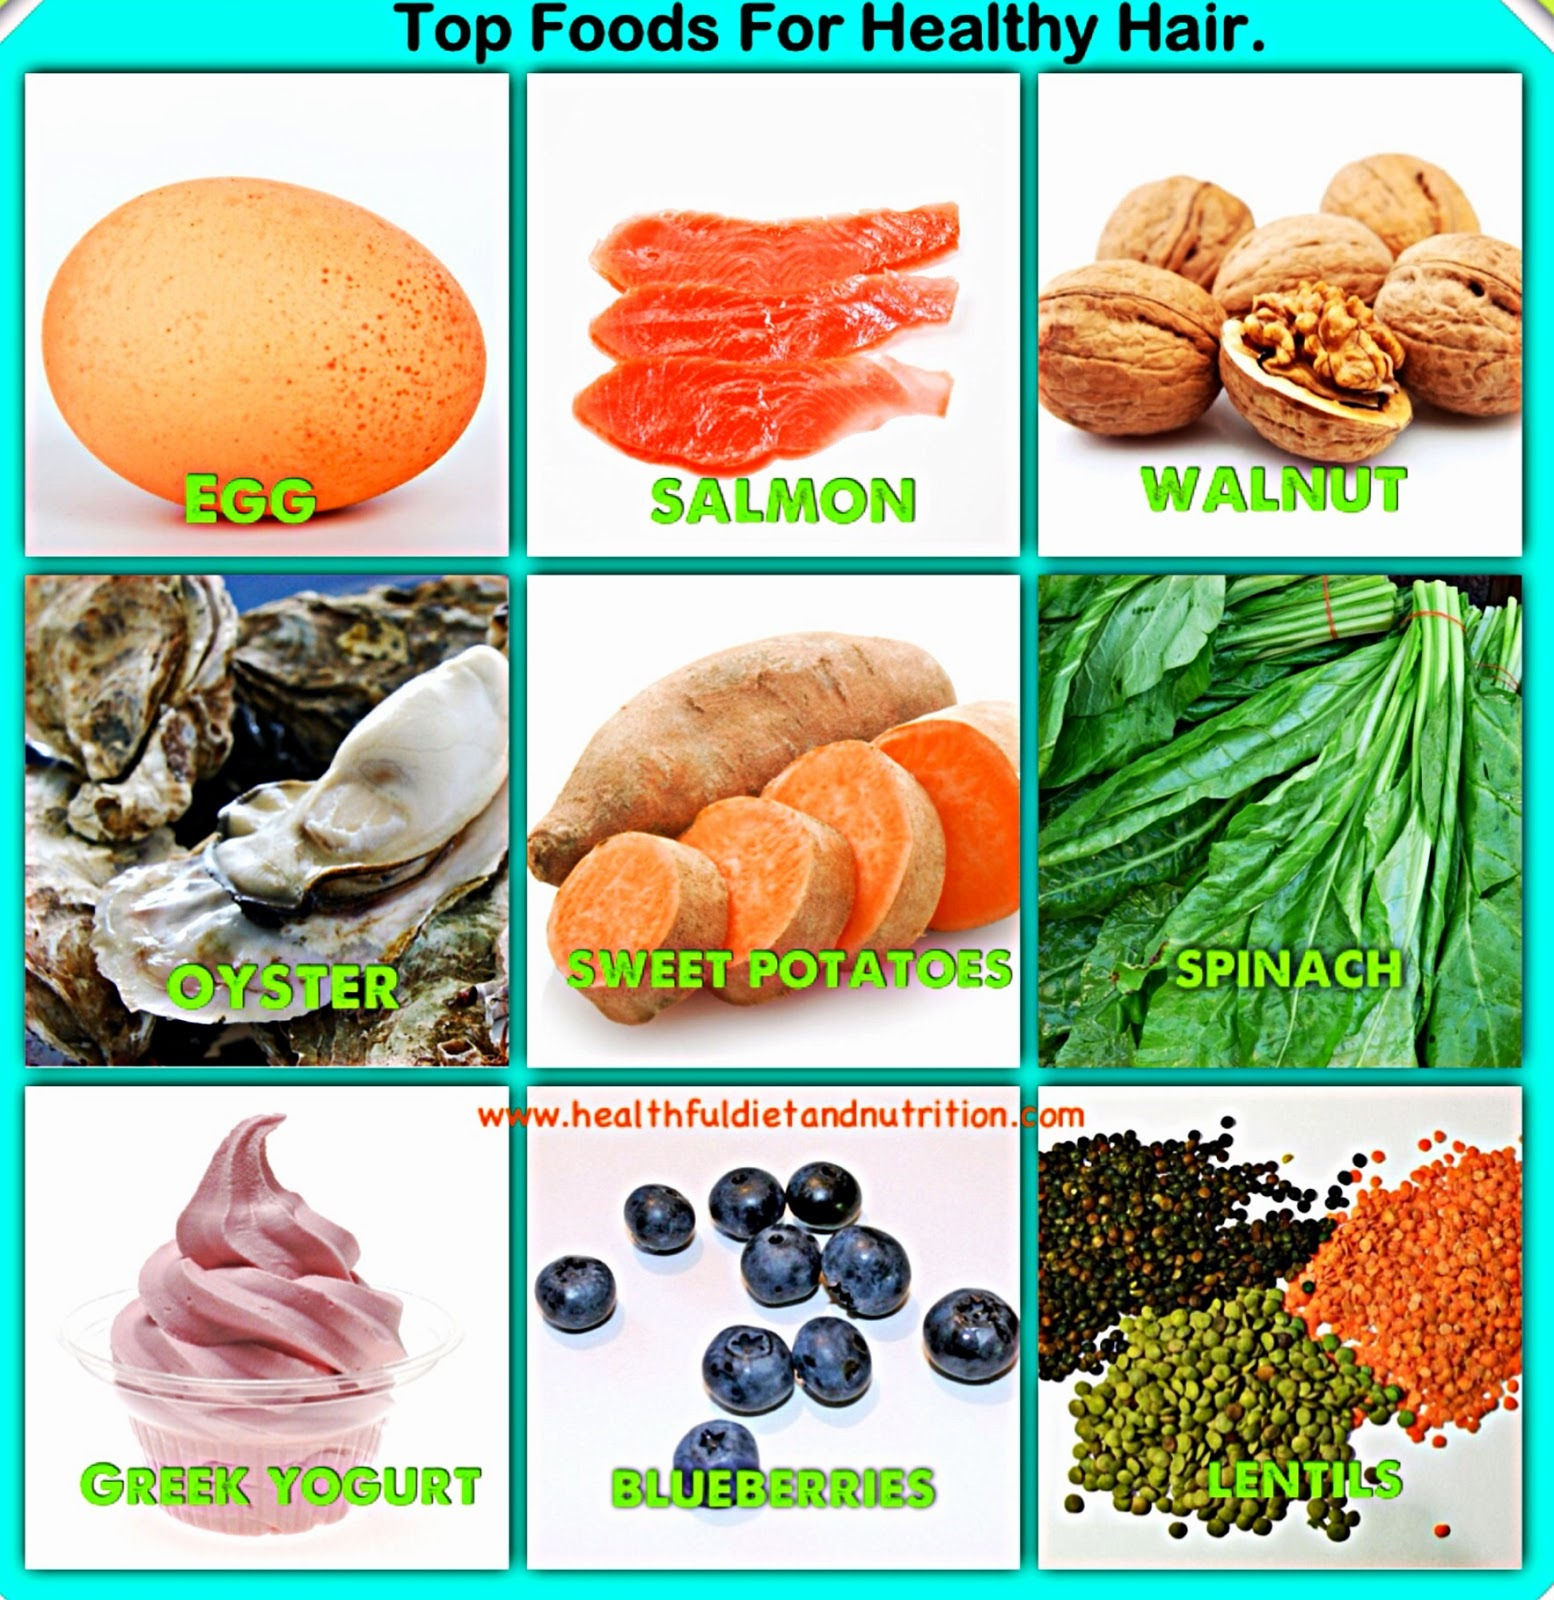 Top Foods For Healthy Hair